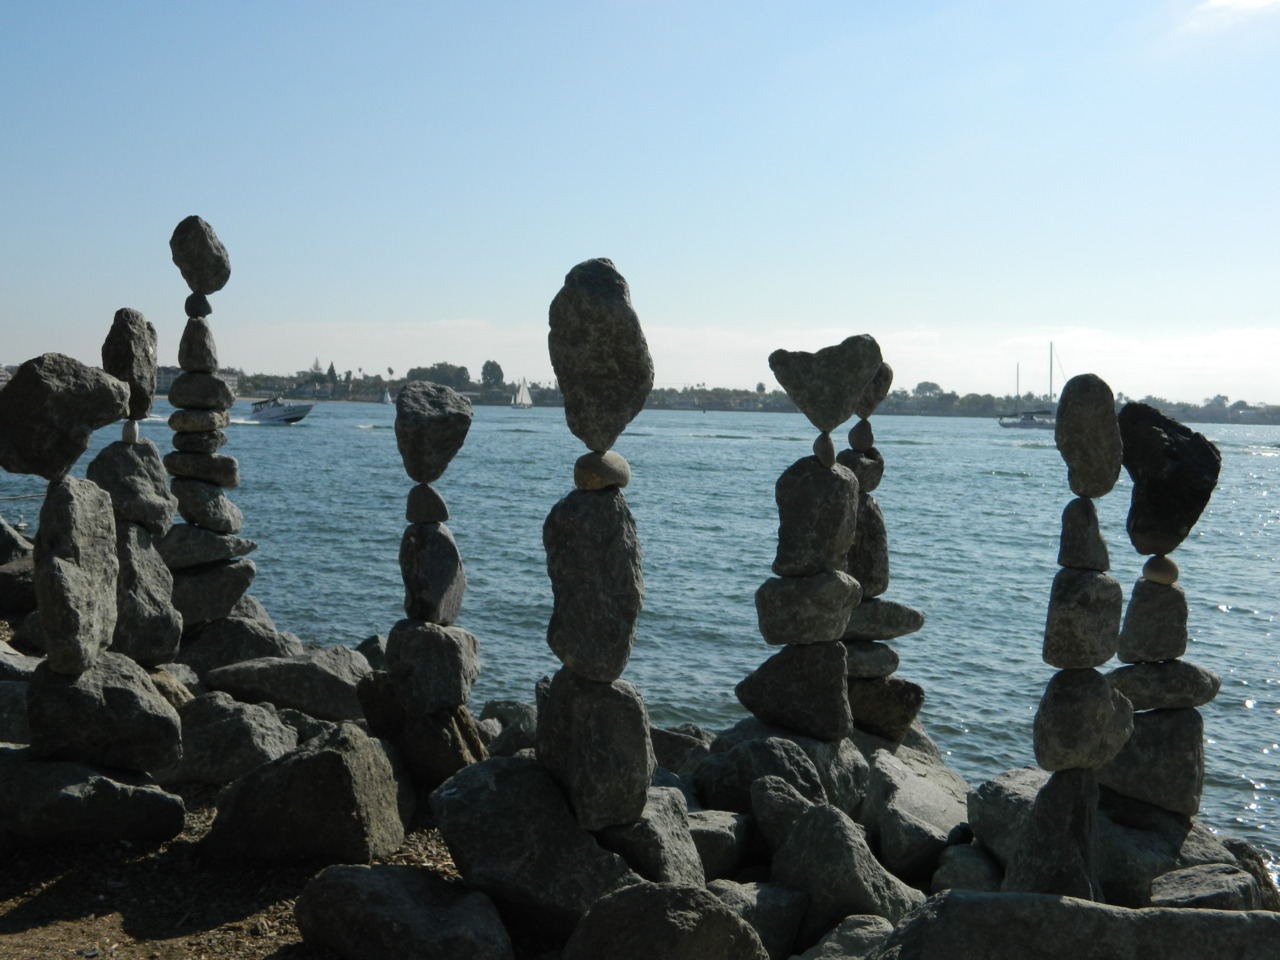 There is this man in seaport village who balance rocks, and he actually showed us how he did it. The man is amazing.